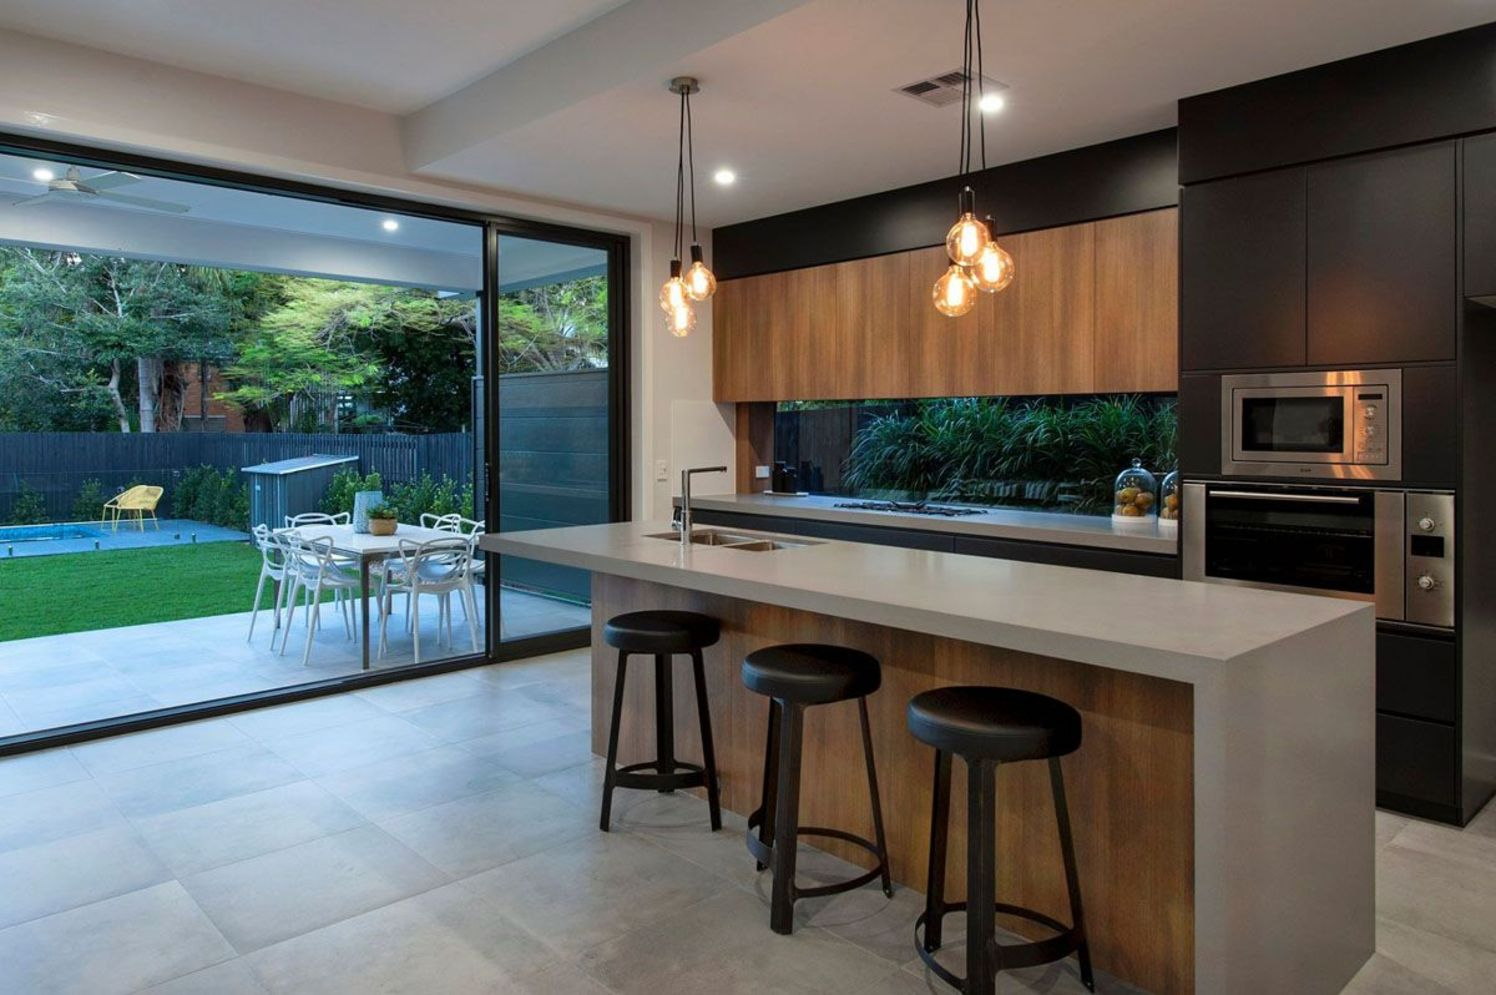 Modern kitchen updates using efficient concrete benchtops to show sturdier interior display Image 24